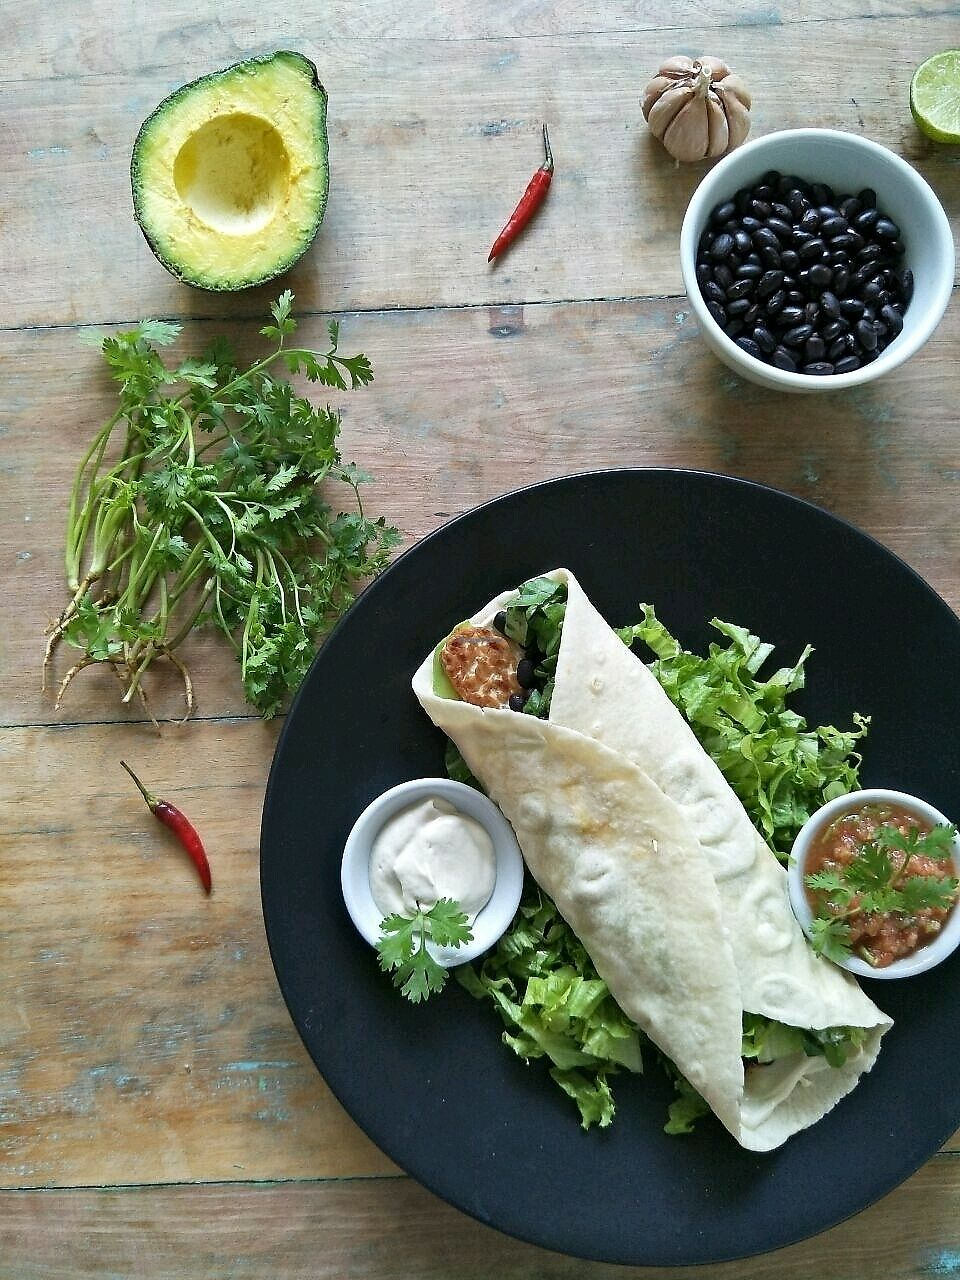 """Photo of Peace Food Cafe  by <a href=""""/members/profile/NeleTa"""">NeleTa</a> <br/>breakfast burrito with tempeh!  <br/> December 5, 2017  - <a href='/contact/abuse/image/83116/332417'>Report</a>"""